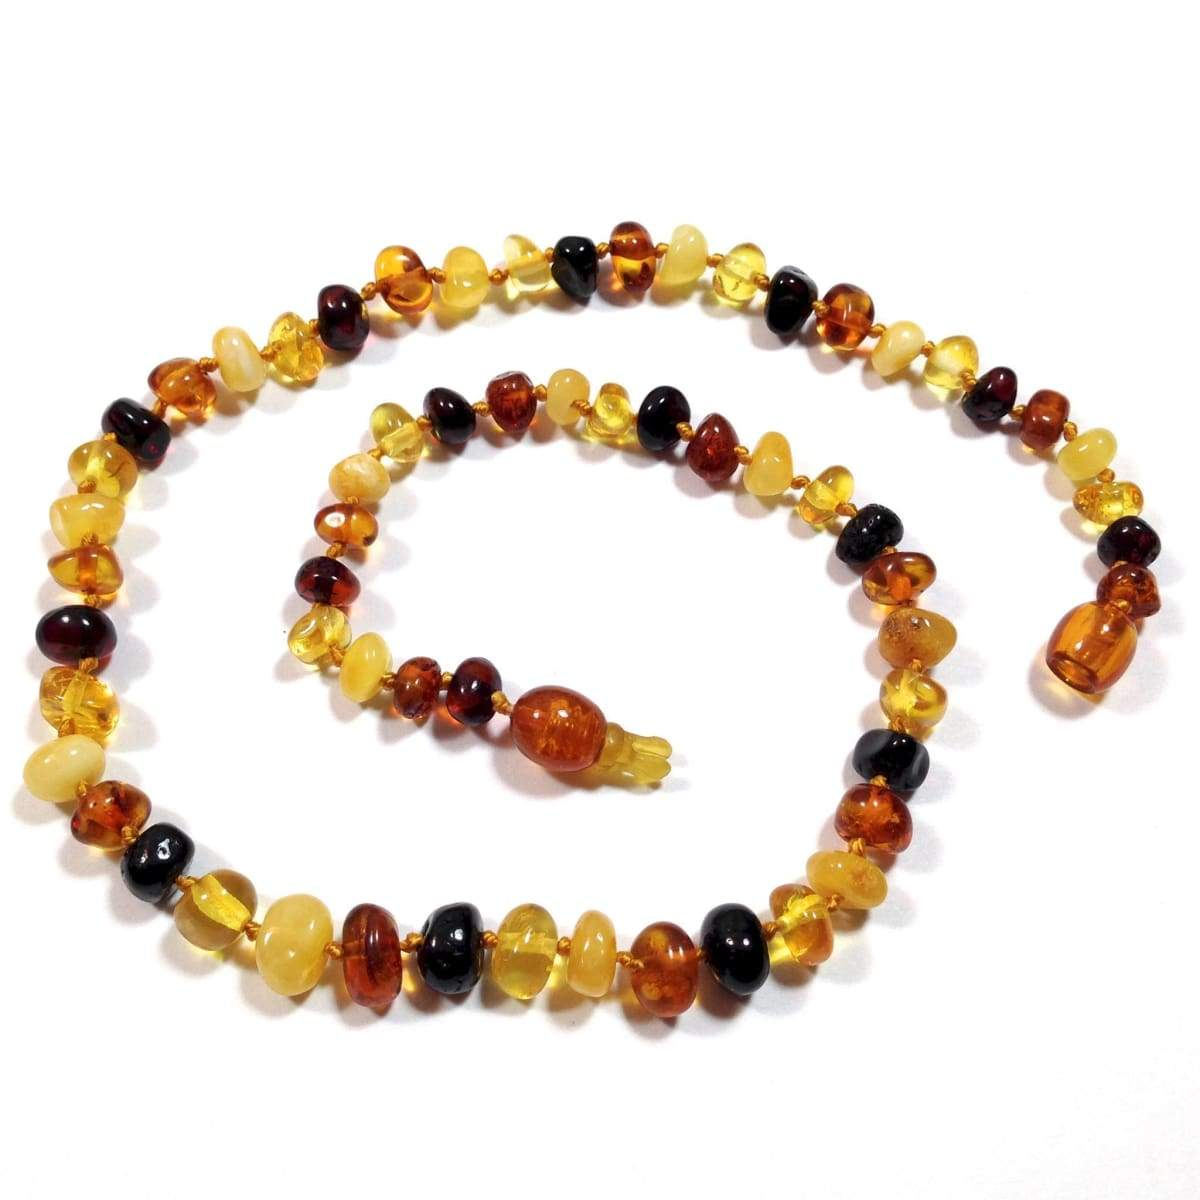 Baltic Amber Multicolored Round - 12 Necklace - Pop Clasp - Baltic Amber Jewelry